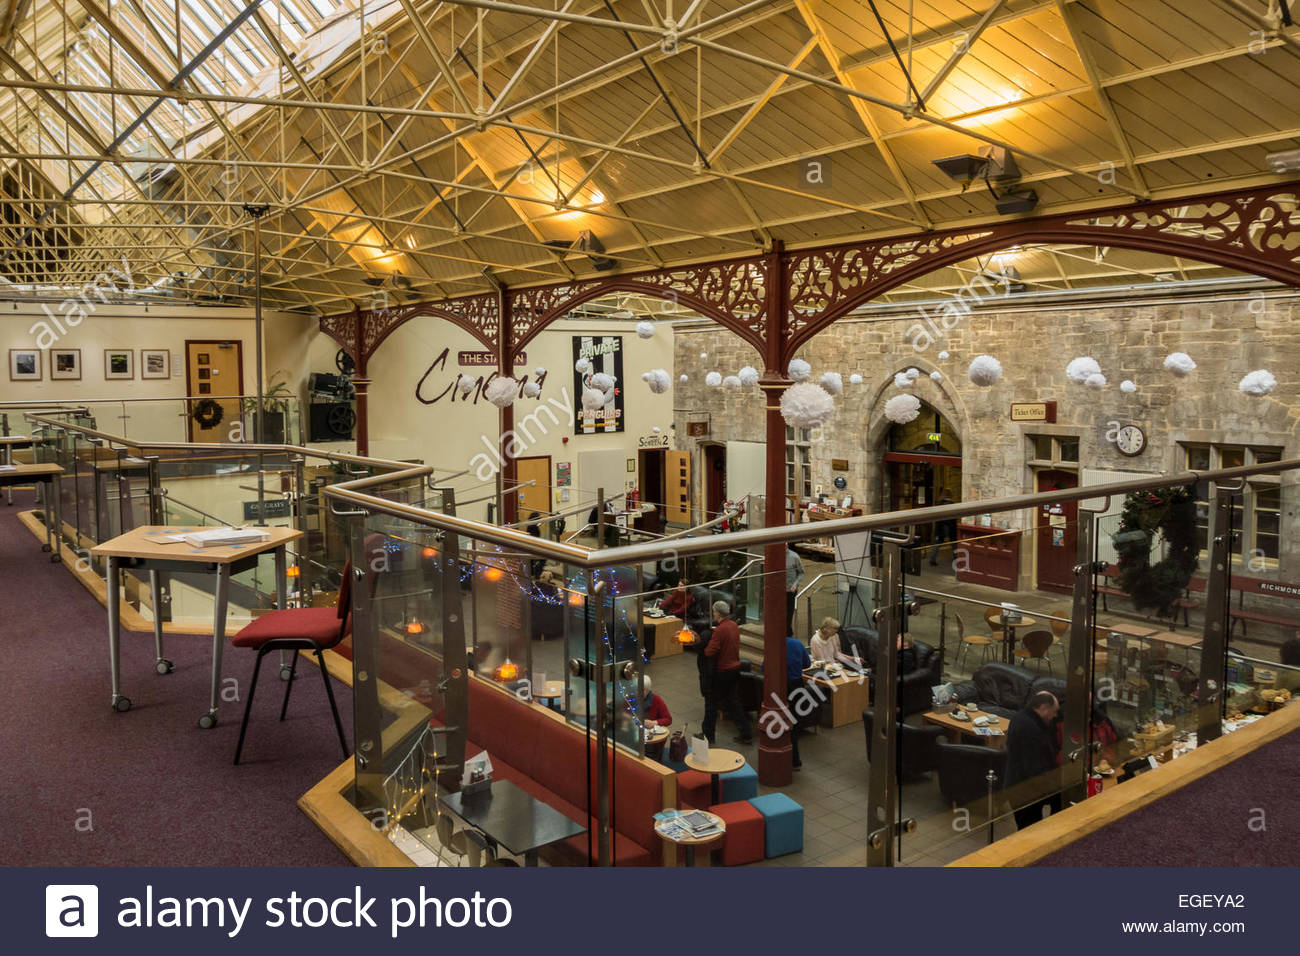 Interior of The Station, a converted railway station in Richmond, North Yorkshire, England. - Stock Image